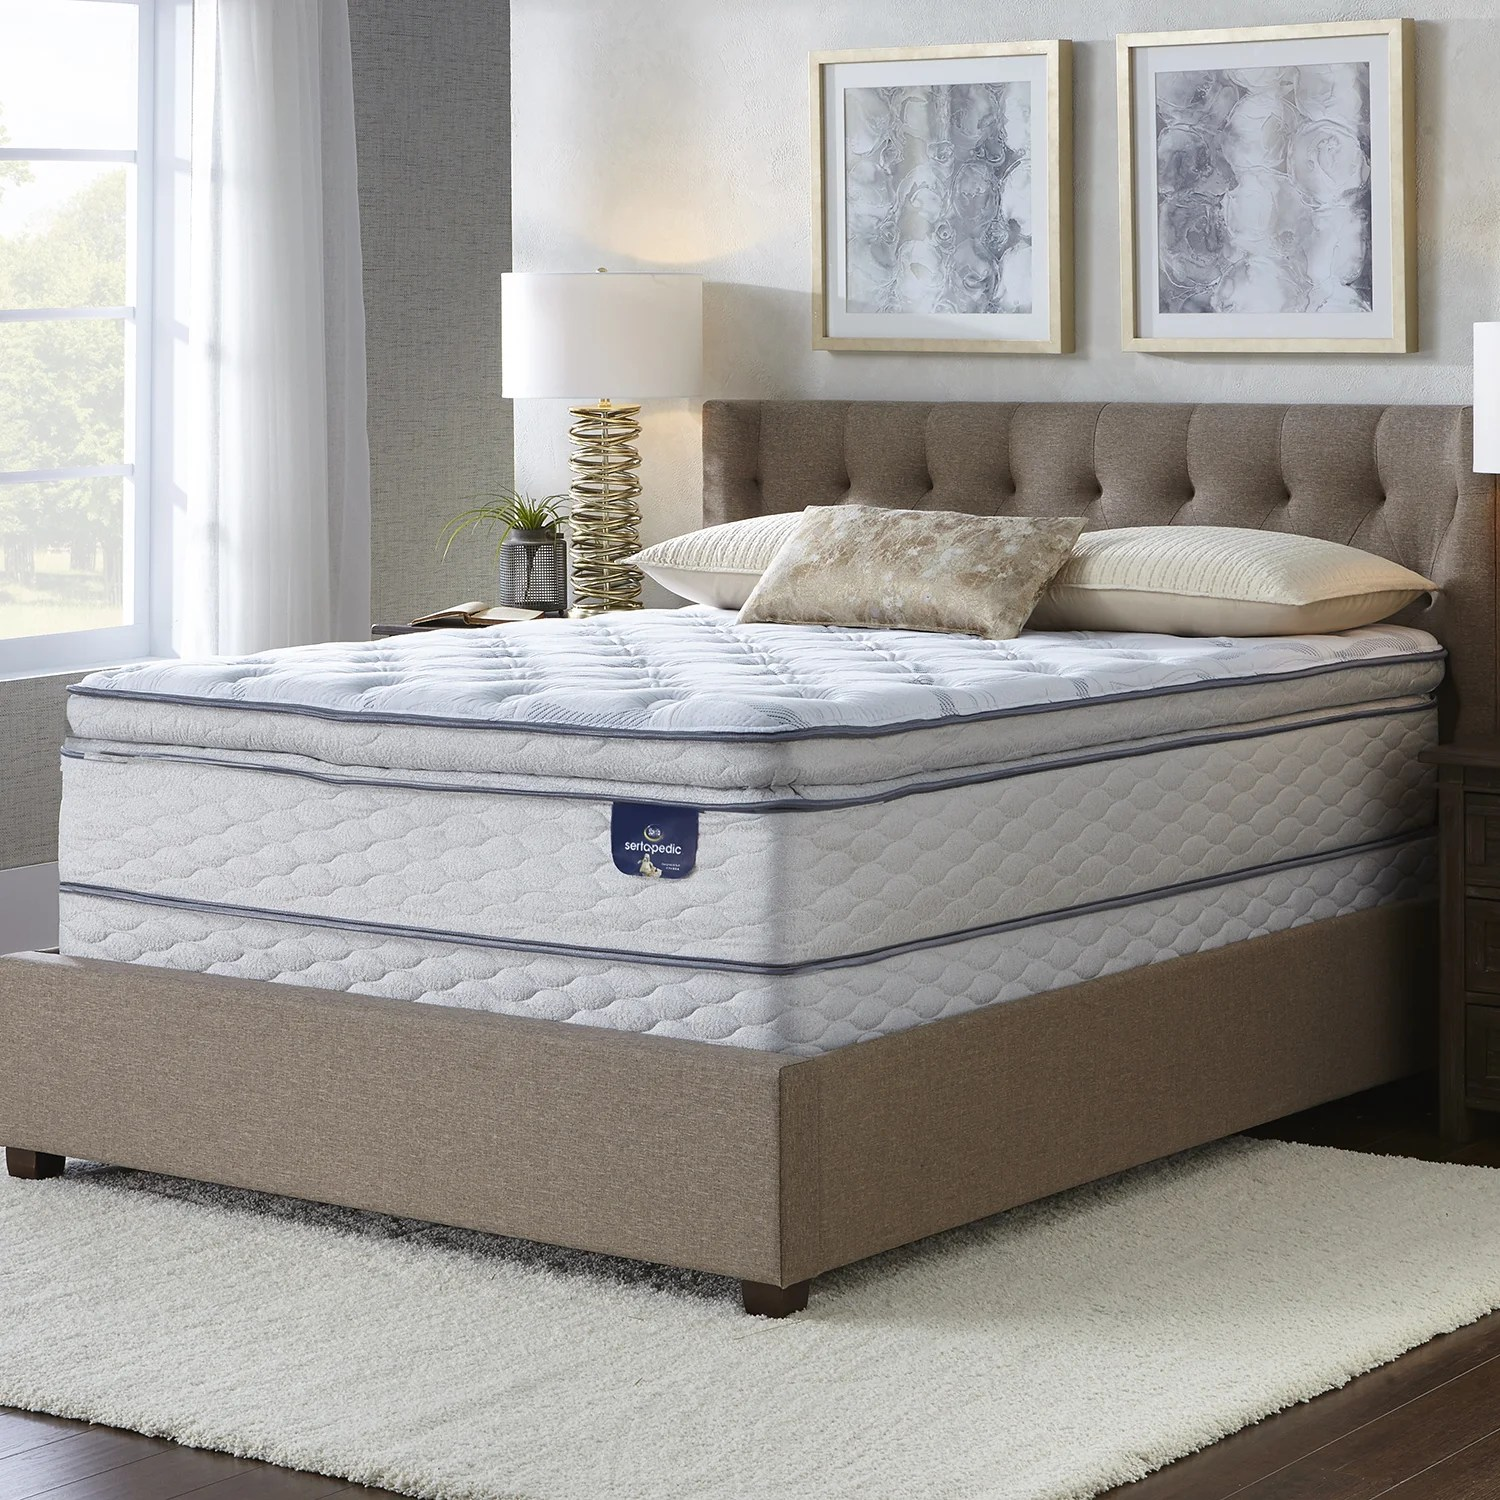 Pillow Top King Mattress Serta Westview Super Pillow Top Firm Mattress